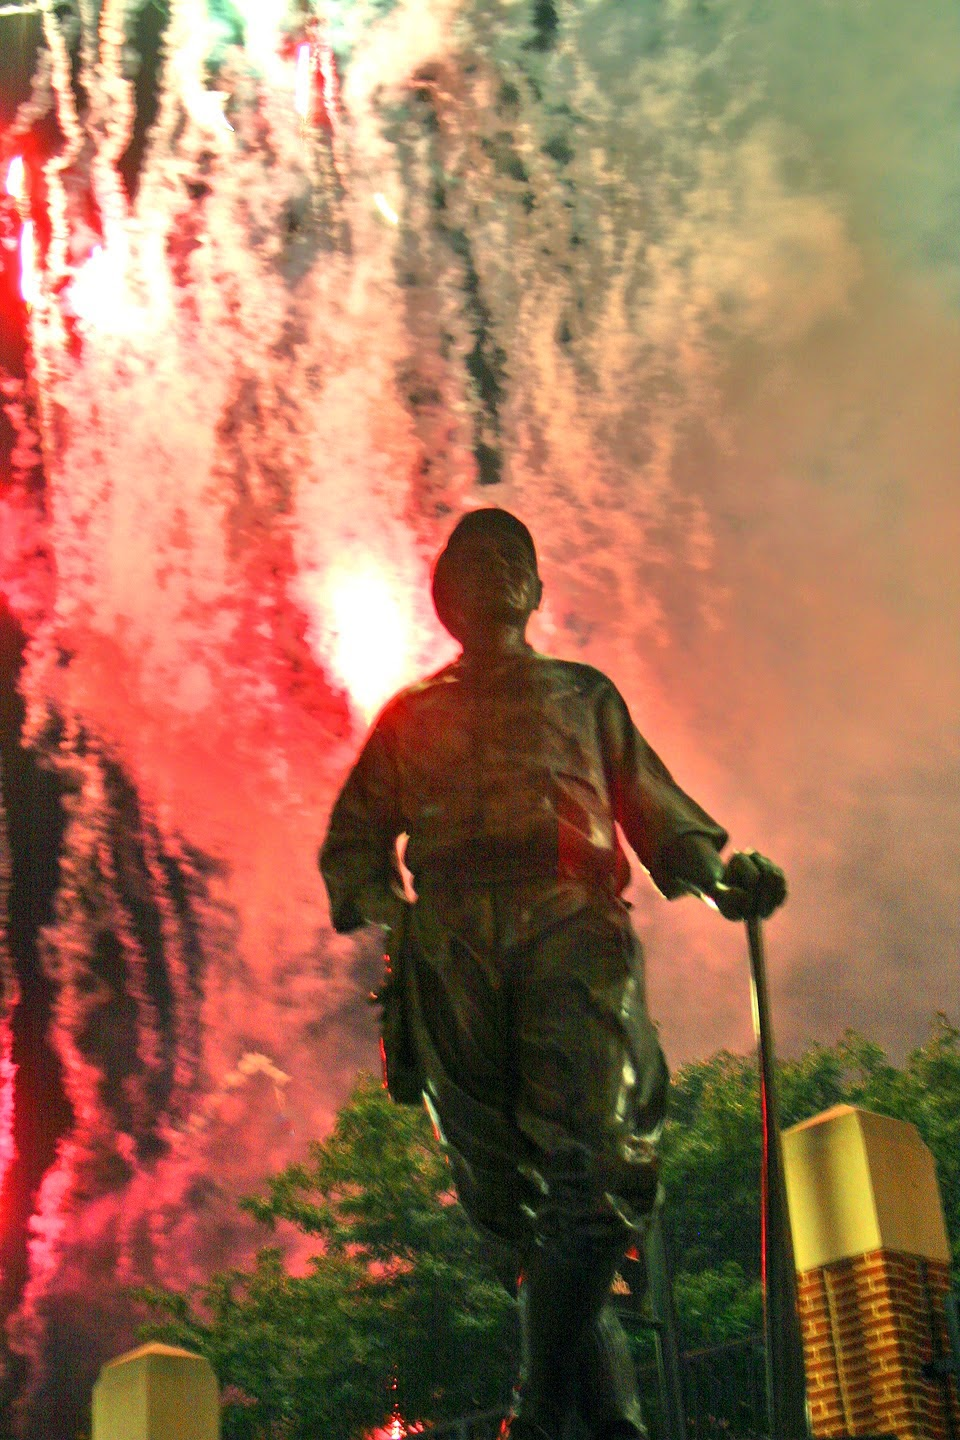 Fireworks display behind statue of The Babe, baseball's greatest  hero.